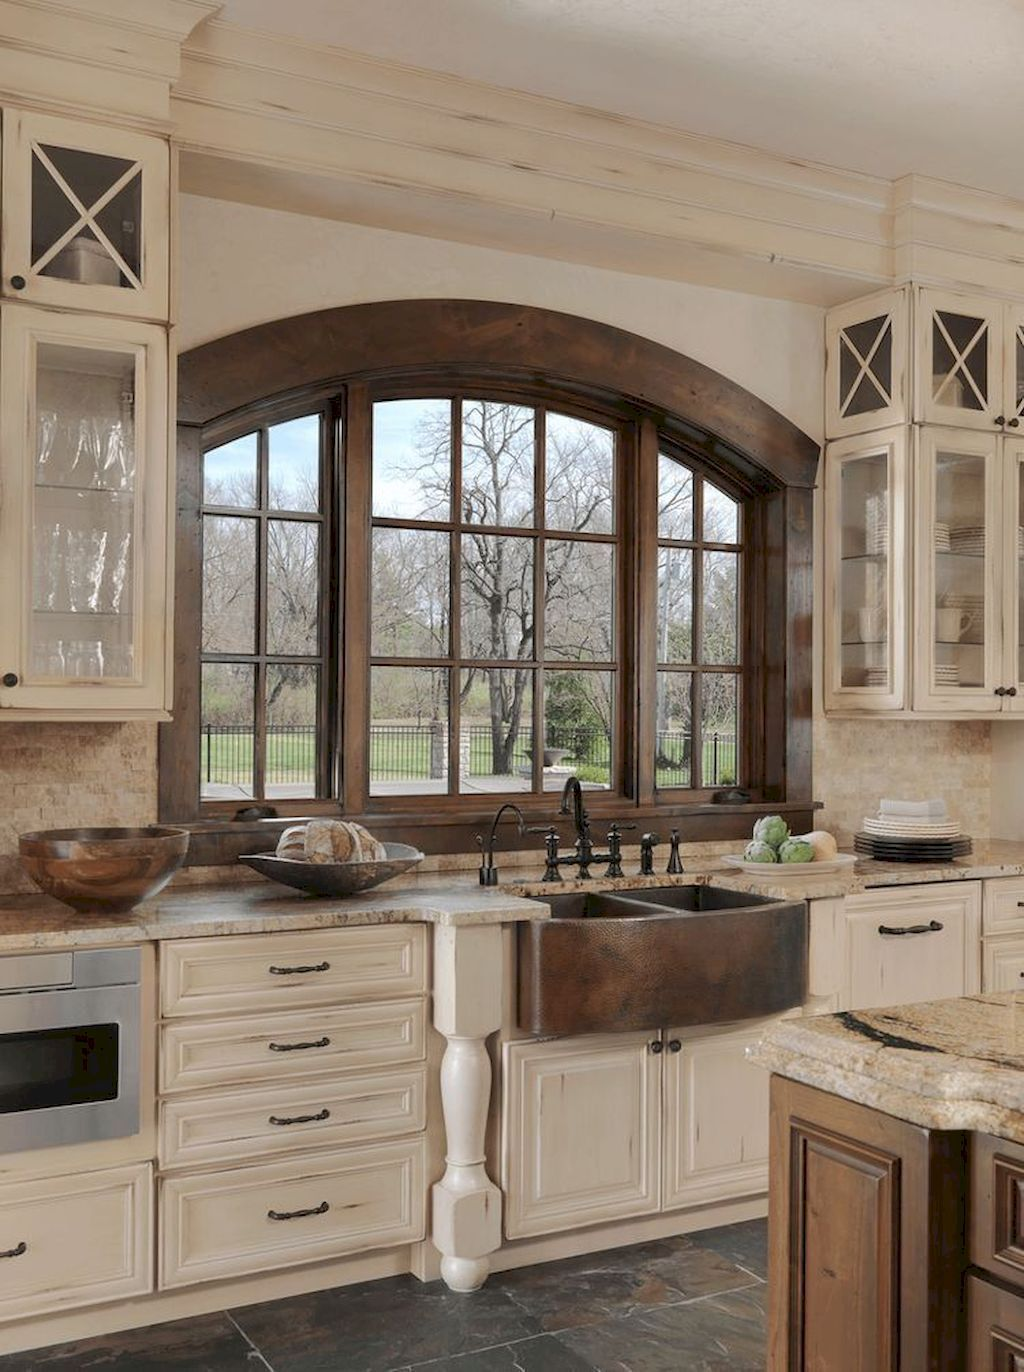 01 modern rustic farmhouse kitchen cabinets ideas rustic farmhouse kitchen farmhouse style on kitchen cabinets farmhouse style id=80379